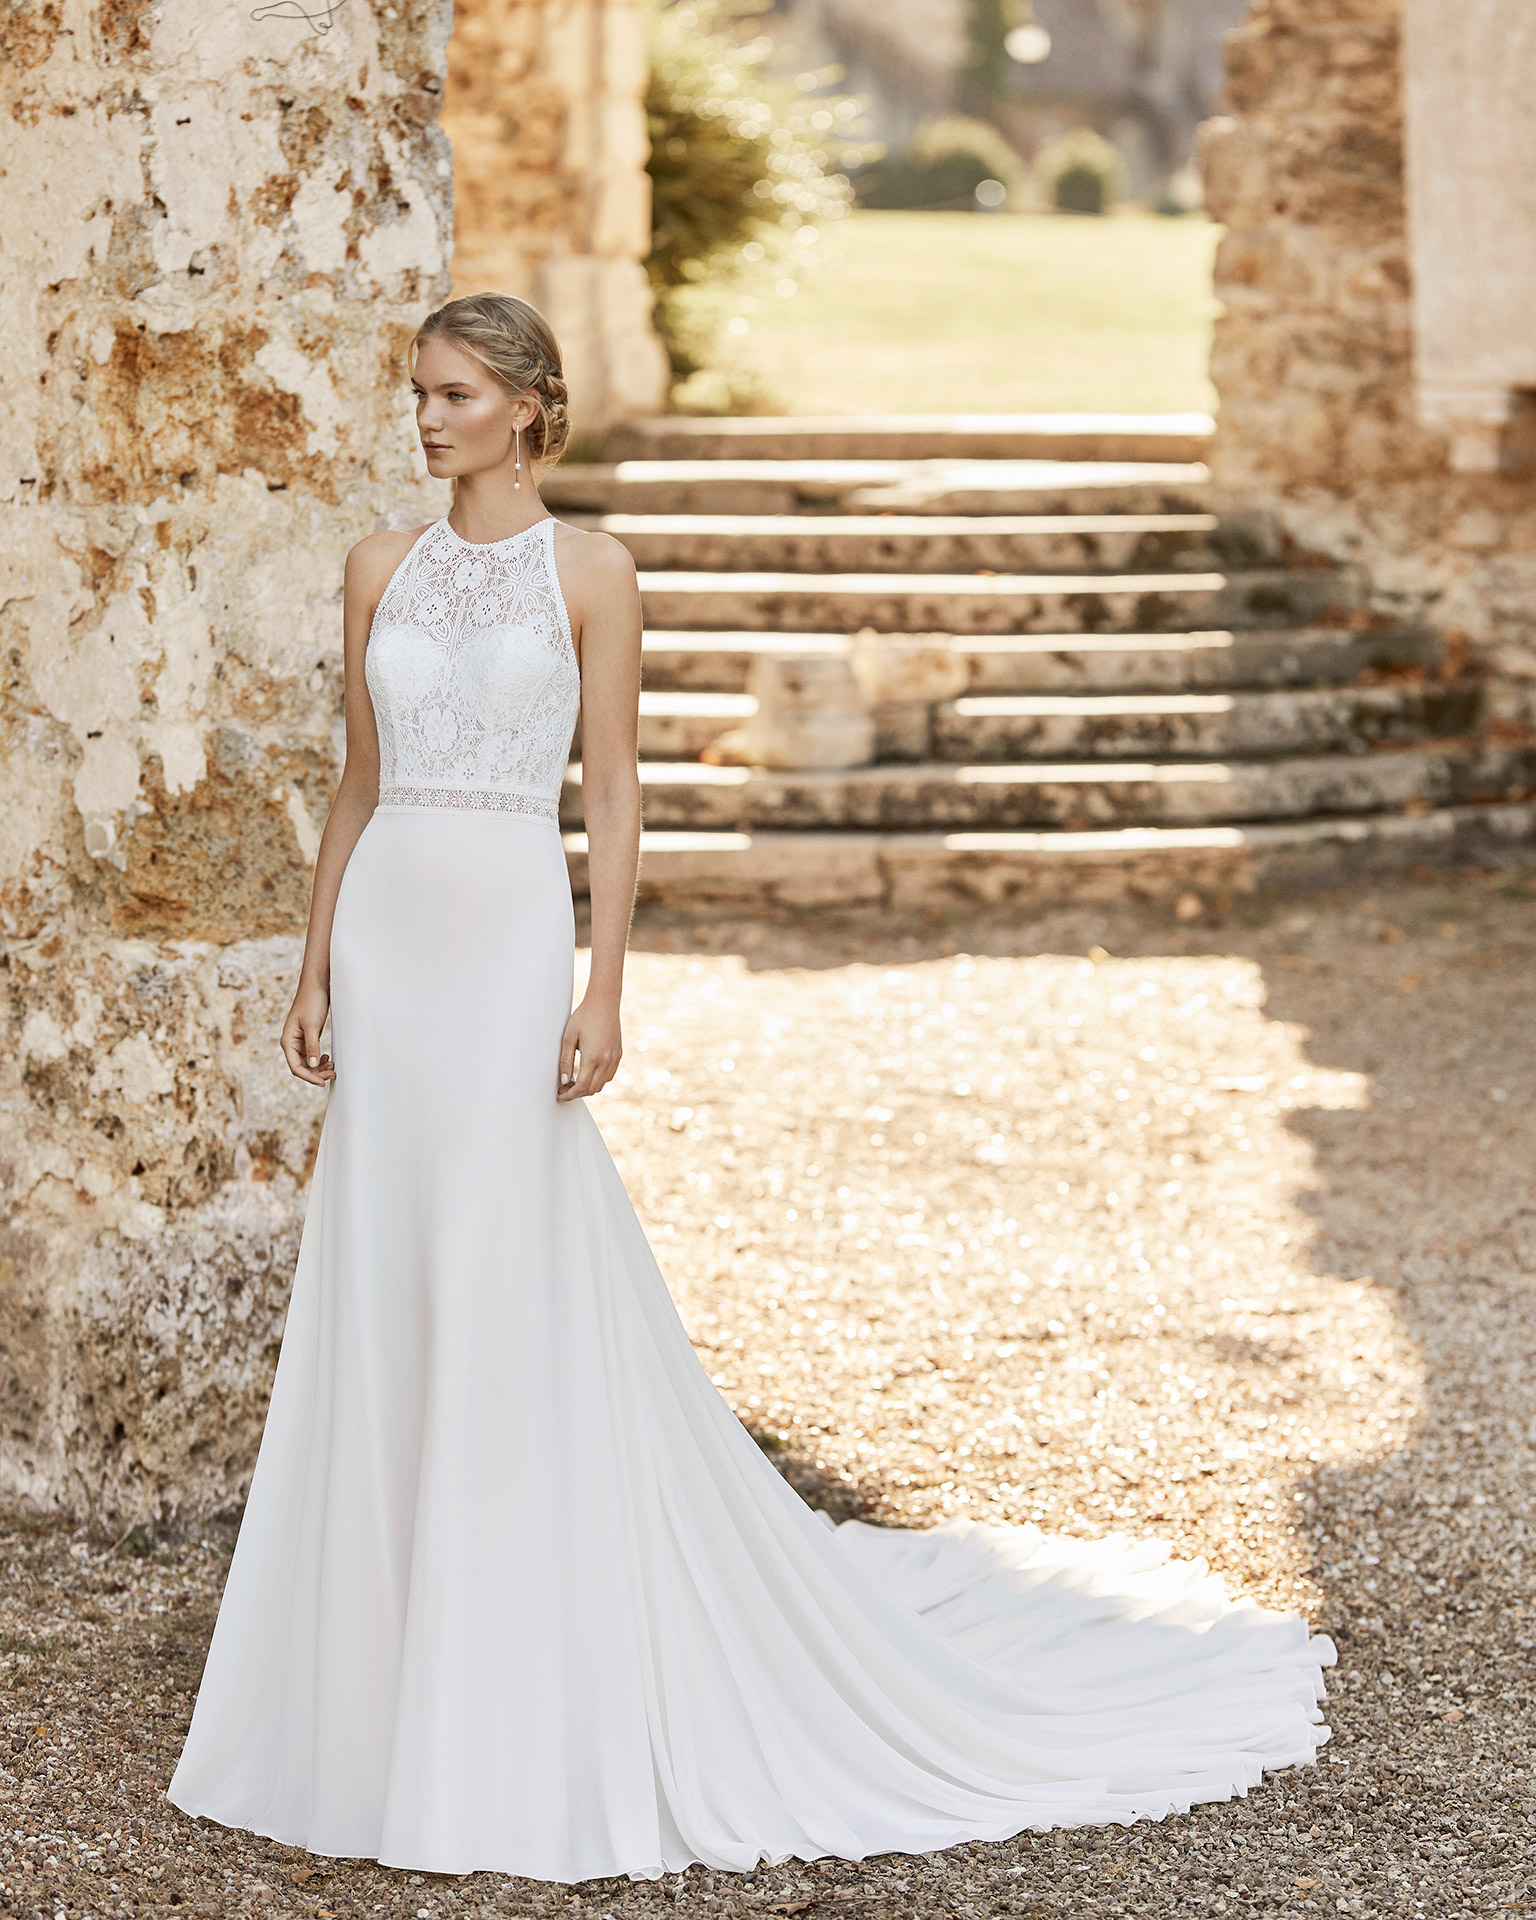 Wedding dress in chiffon. Halter neckline in lace, lace belt and open back with shoulder straps attached to collar. 2021 ALMANOVIA Collection.